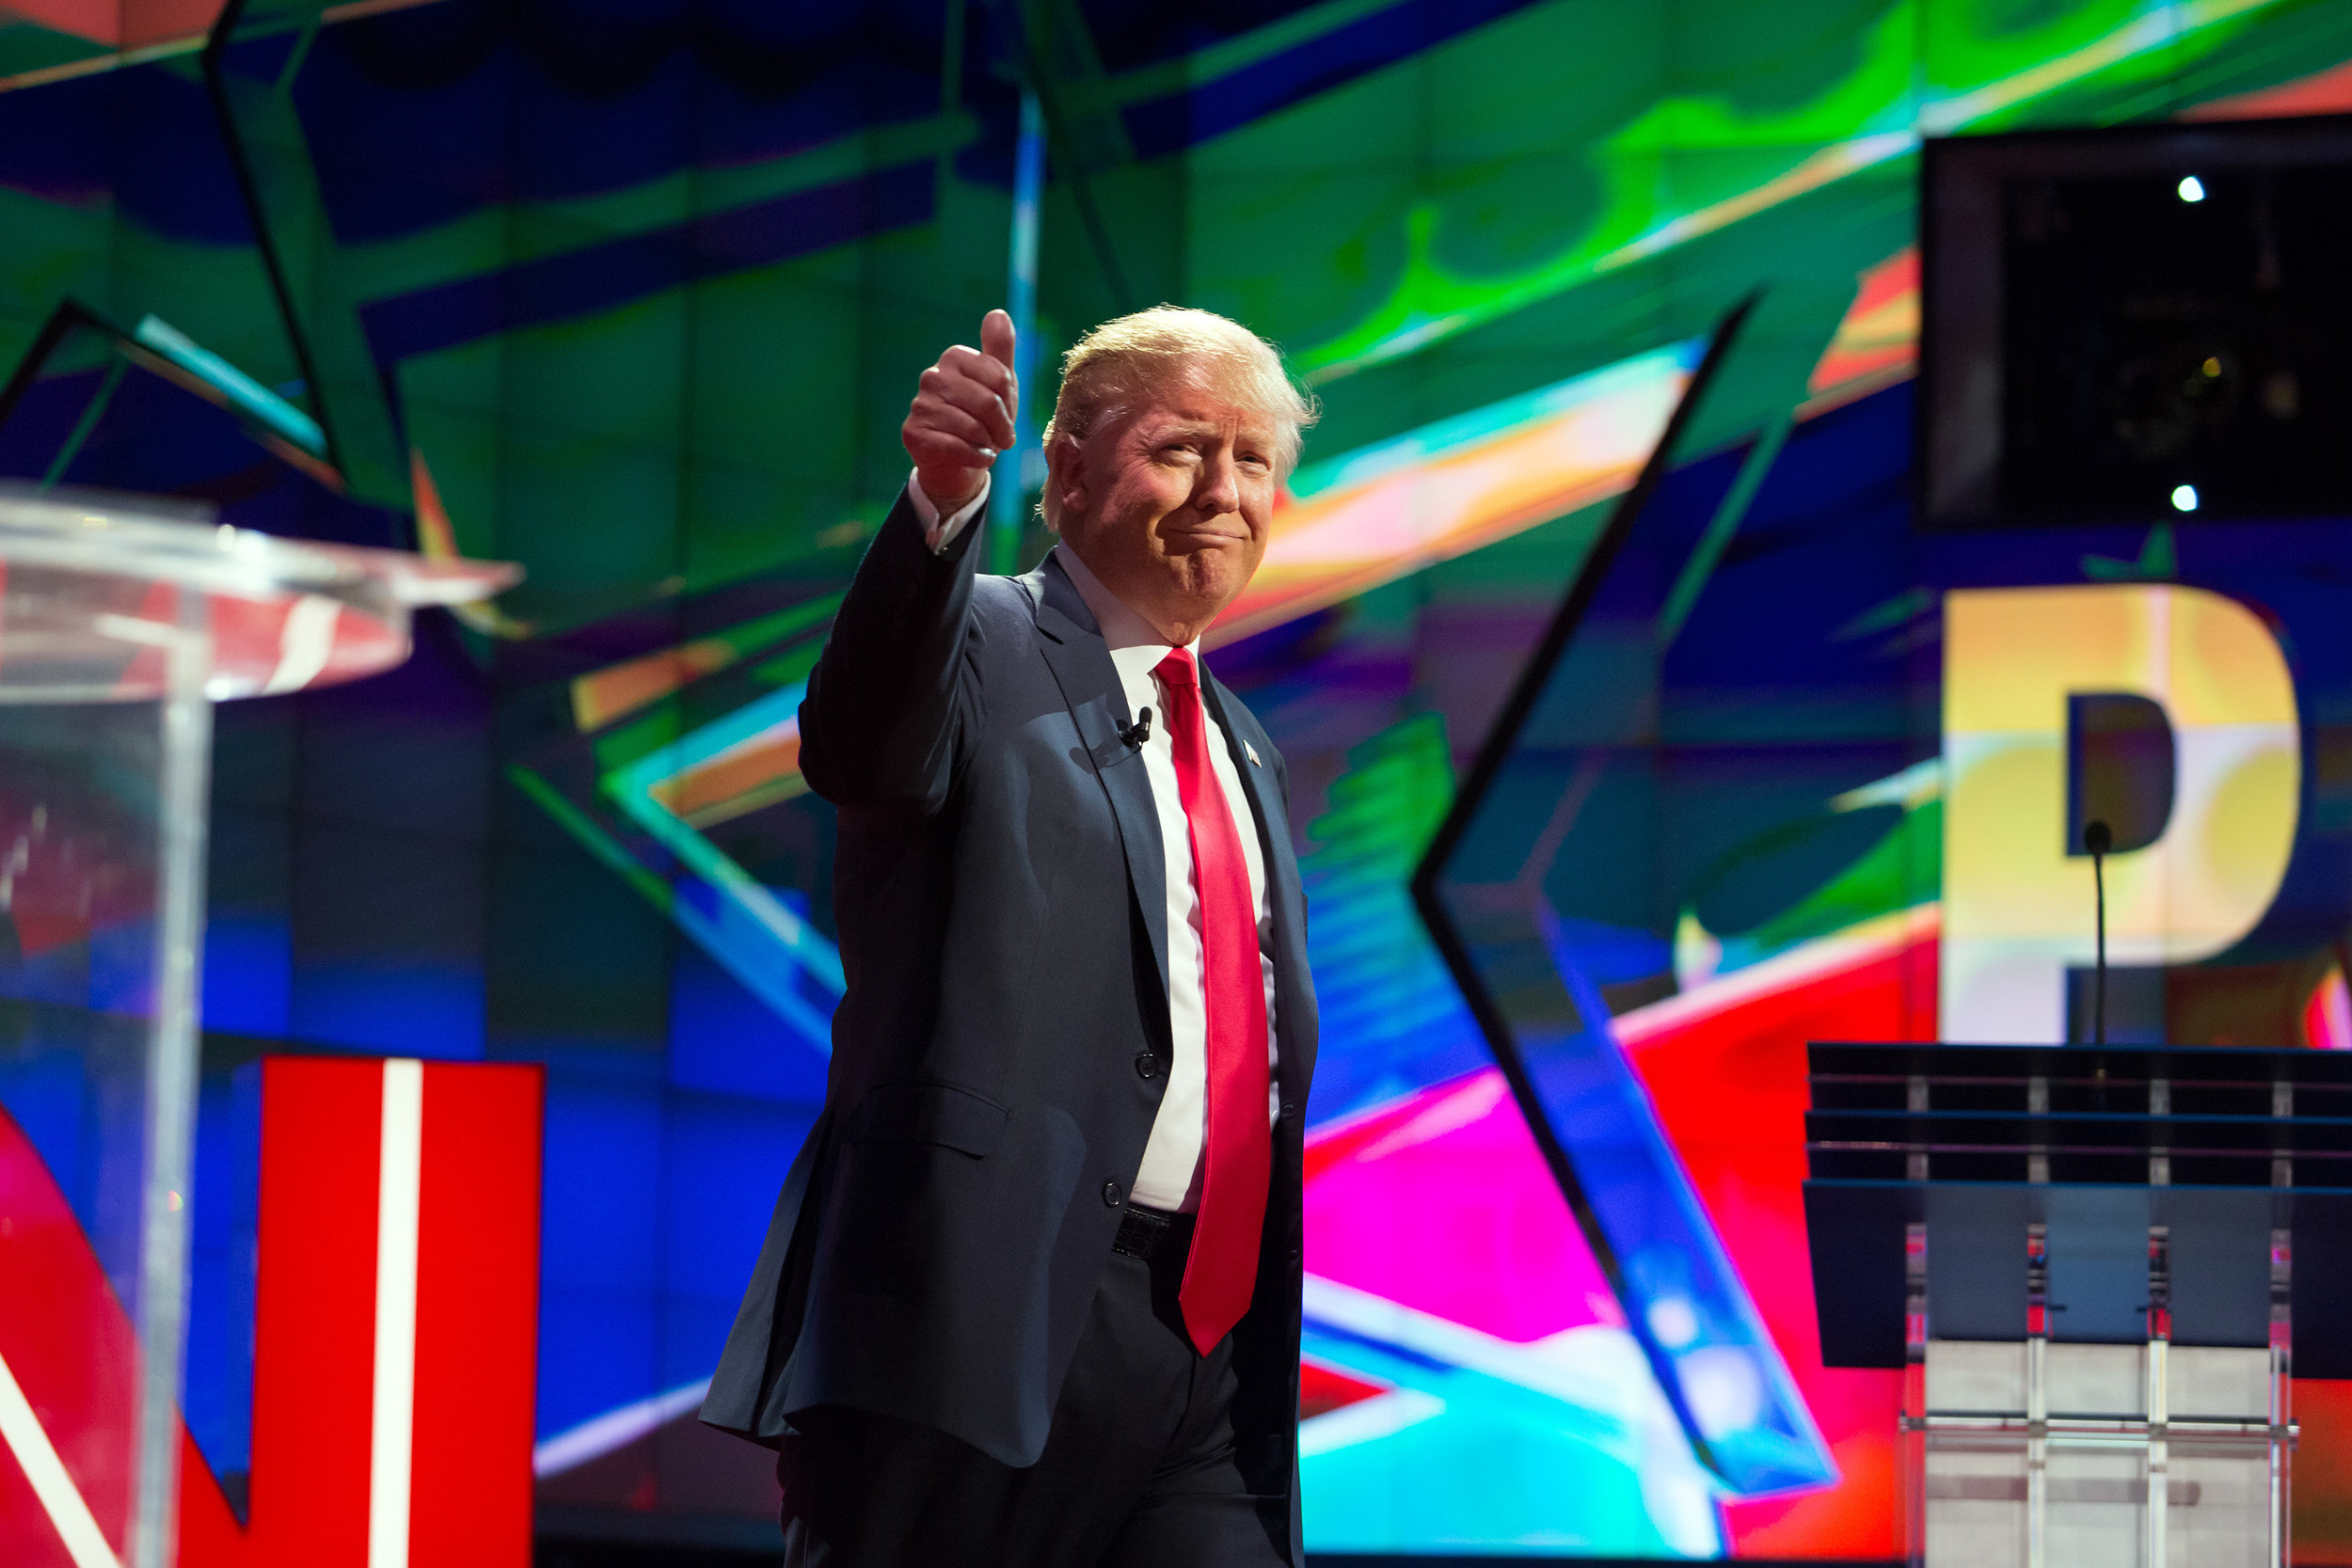 Donald Trump takes the stage at a GOP debate in Las Vegas during the presidential primary.